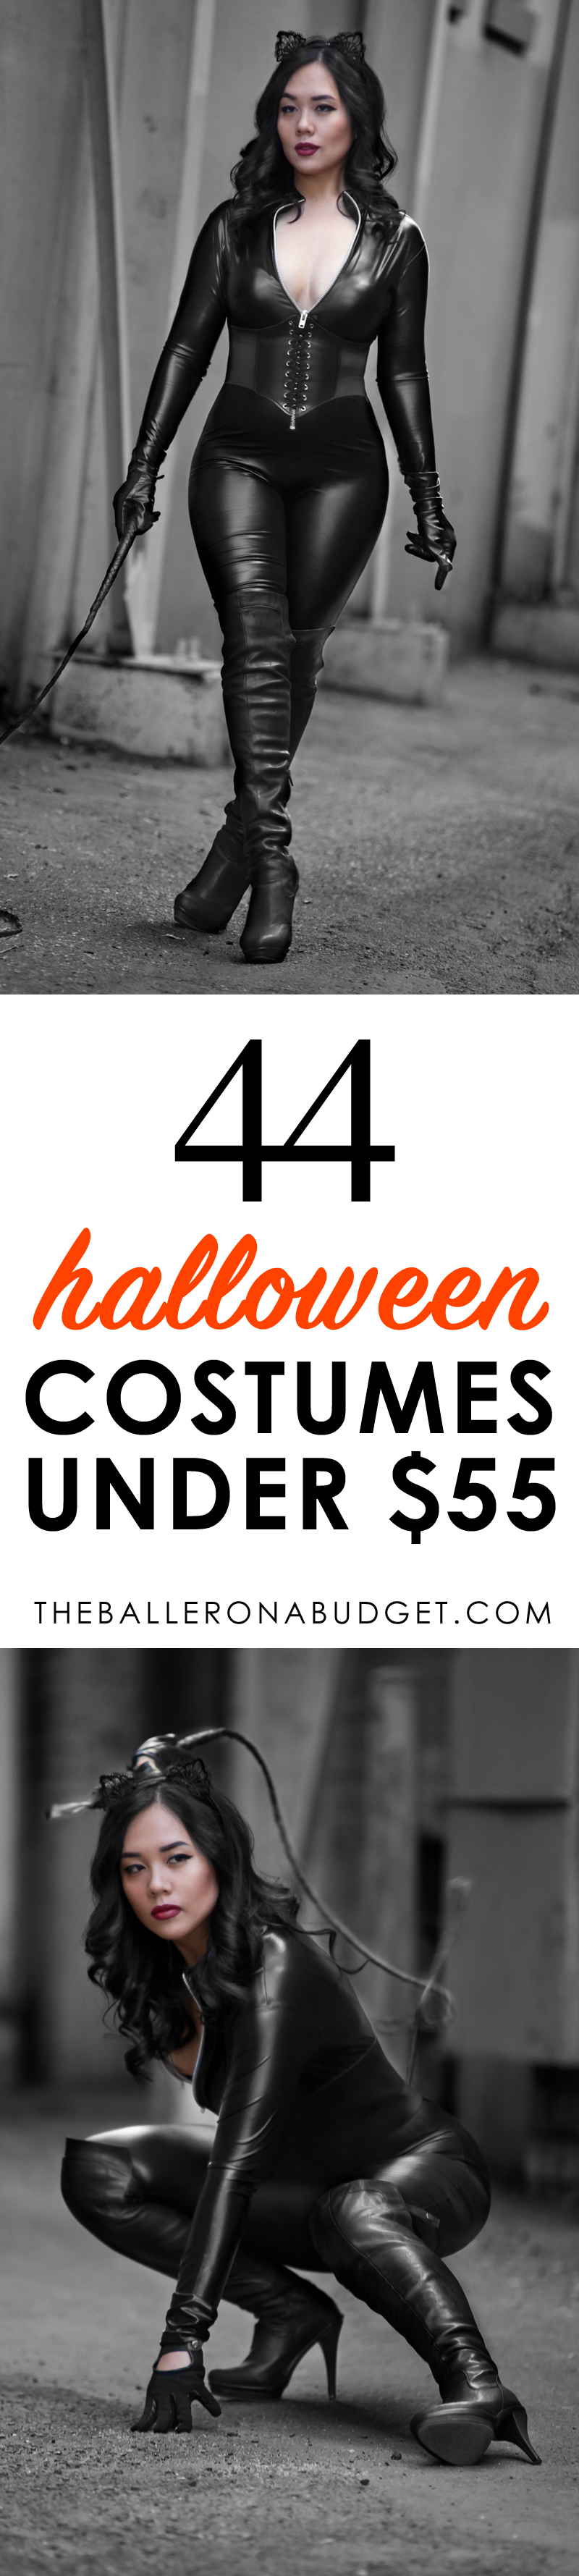 Ladies, looking for a unique, eye-catching or sexy costume under $55? Here are 44 cheap Halloween costumes that don't break the bank!